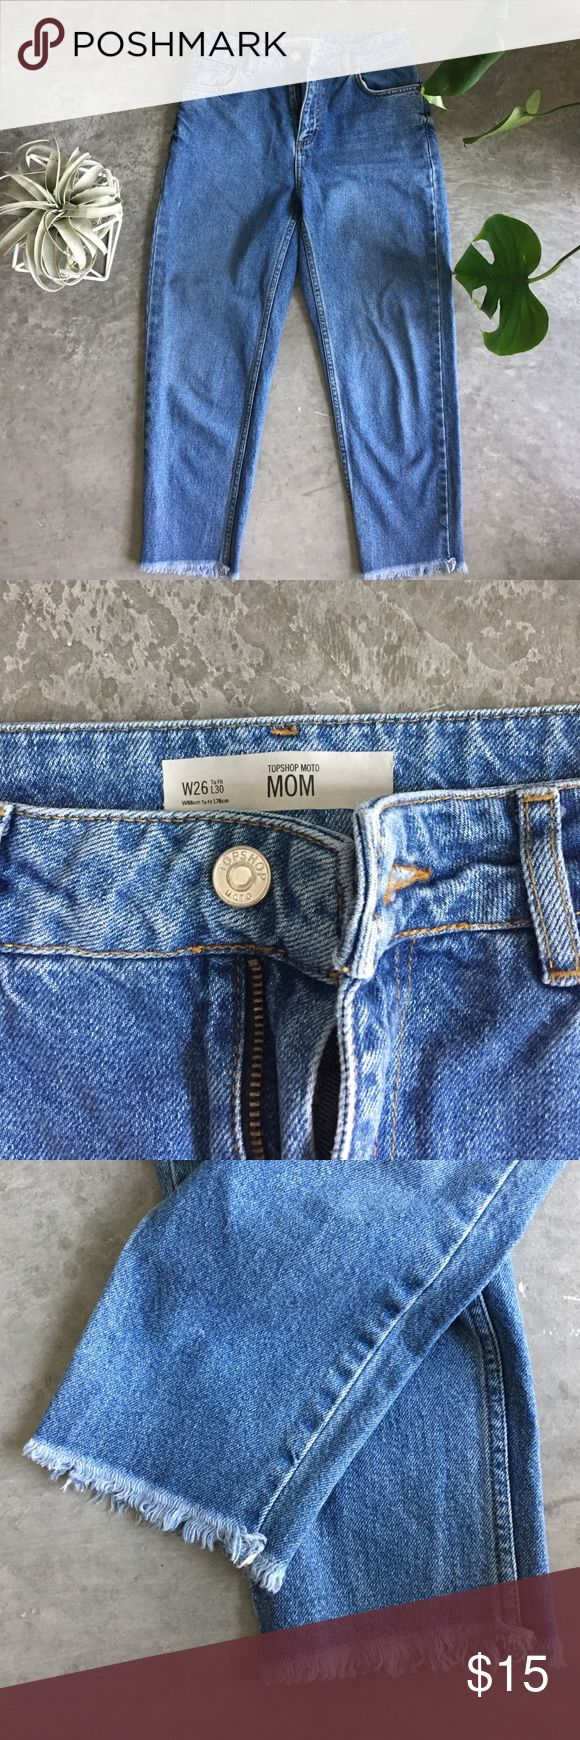 Topshop High-waisted, Cropped Mom Jeans size 26 Like new Topshop high-waisted, Cropped, frayed mom jeans size 26. Fits like a 25 Topshop Jeans Ankle & Cropped